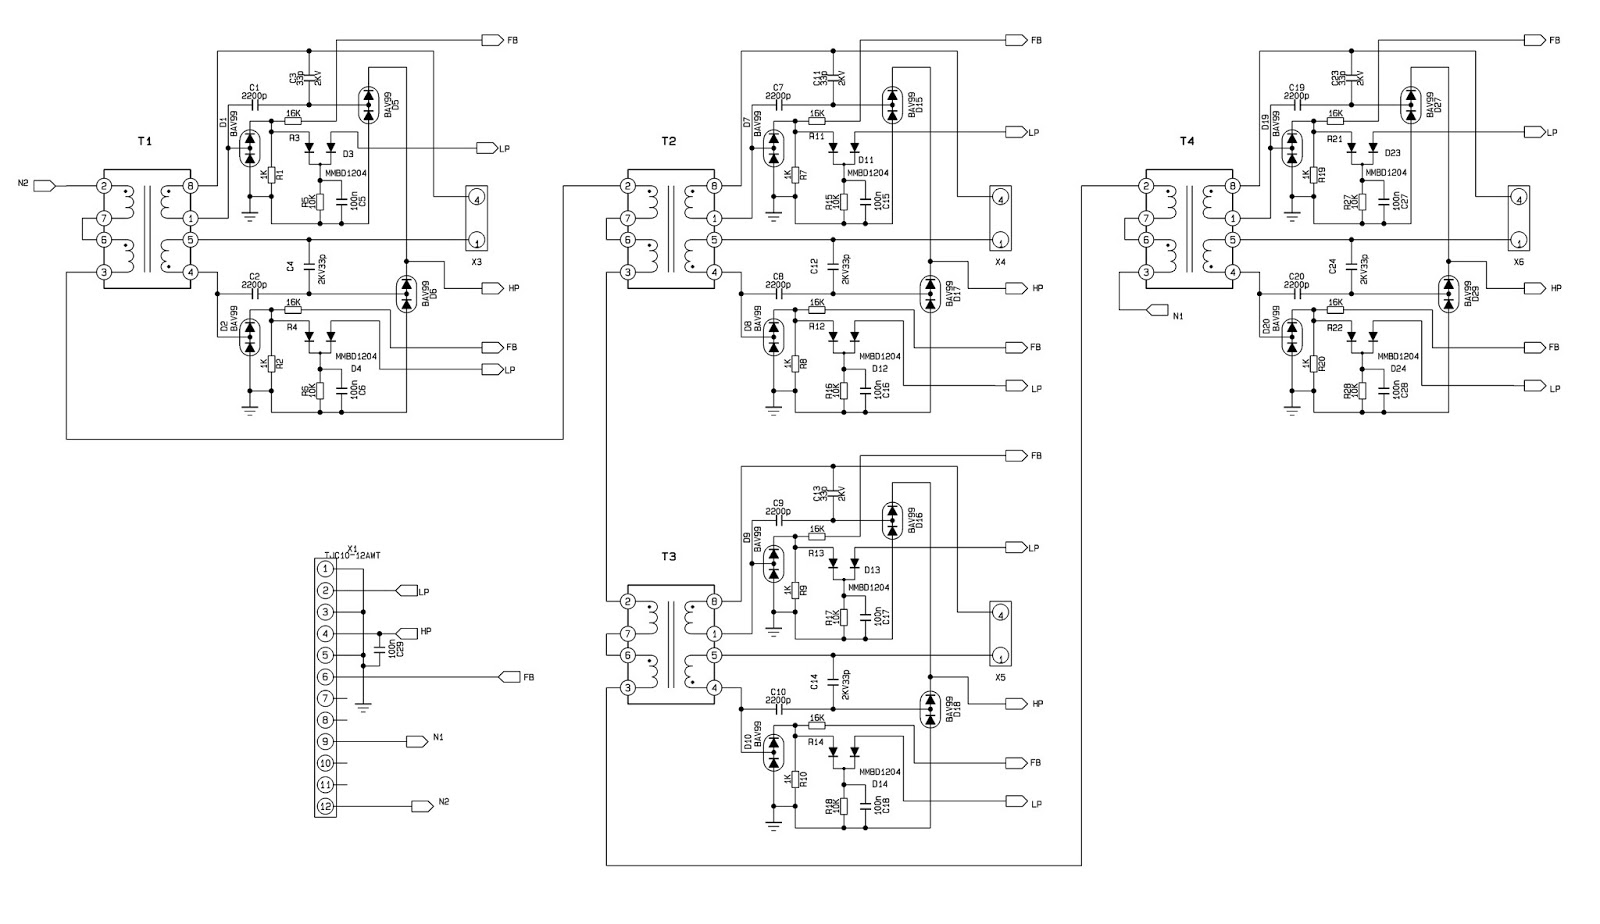 4t60e transmission tcc solenoid location diagram